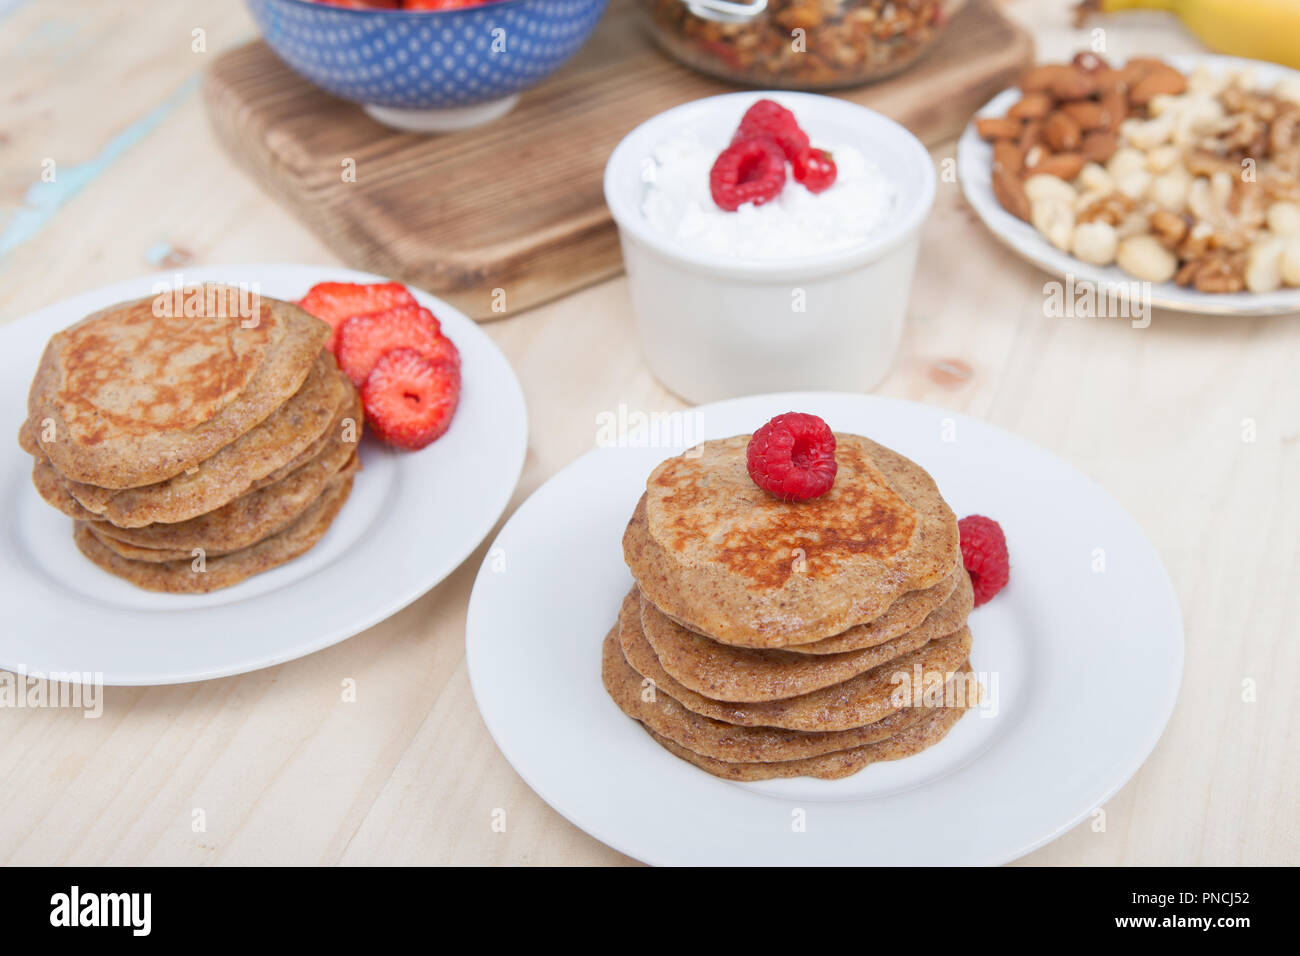 Breakfast: paleo style grain free banana almond pancakes, coconut yogurt with berries, selective focus Stock Photo